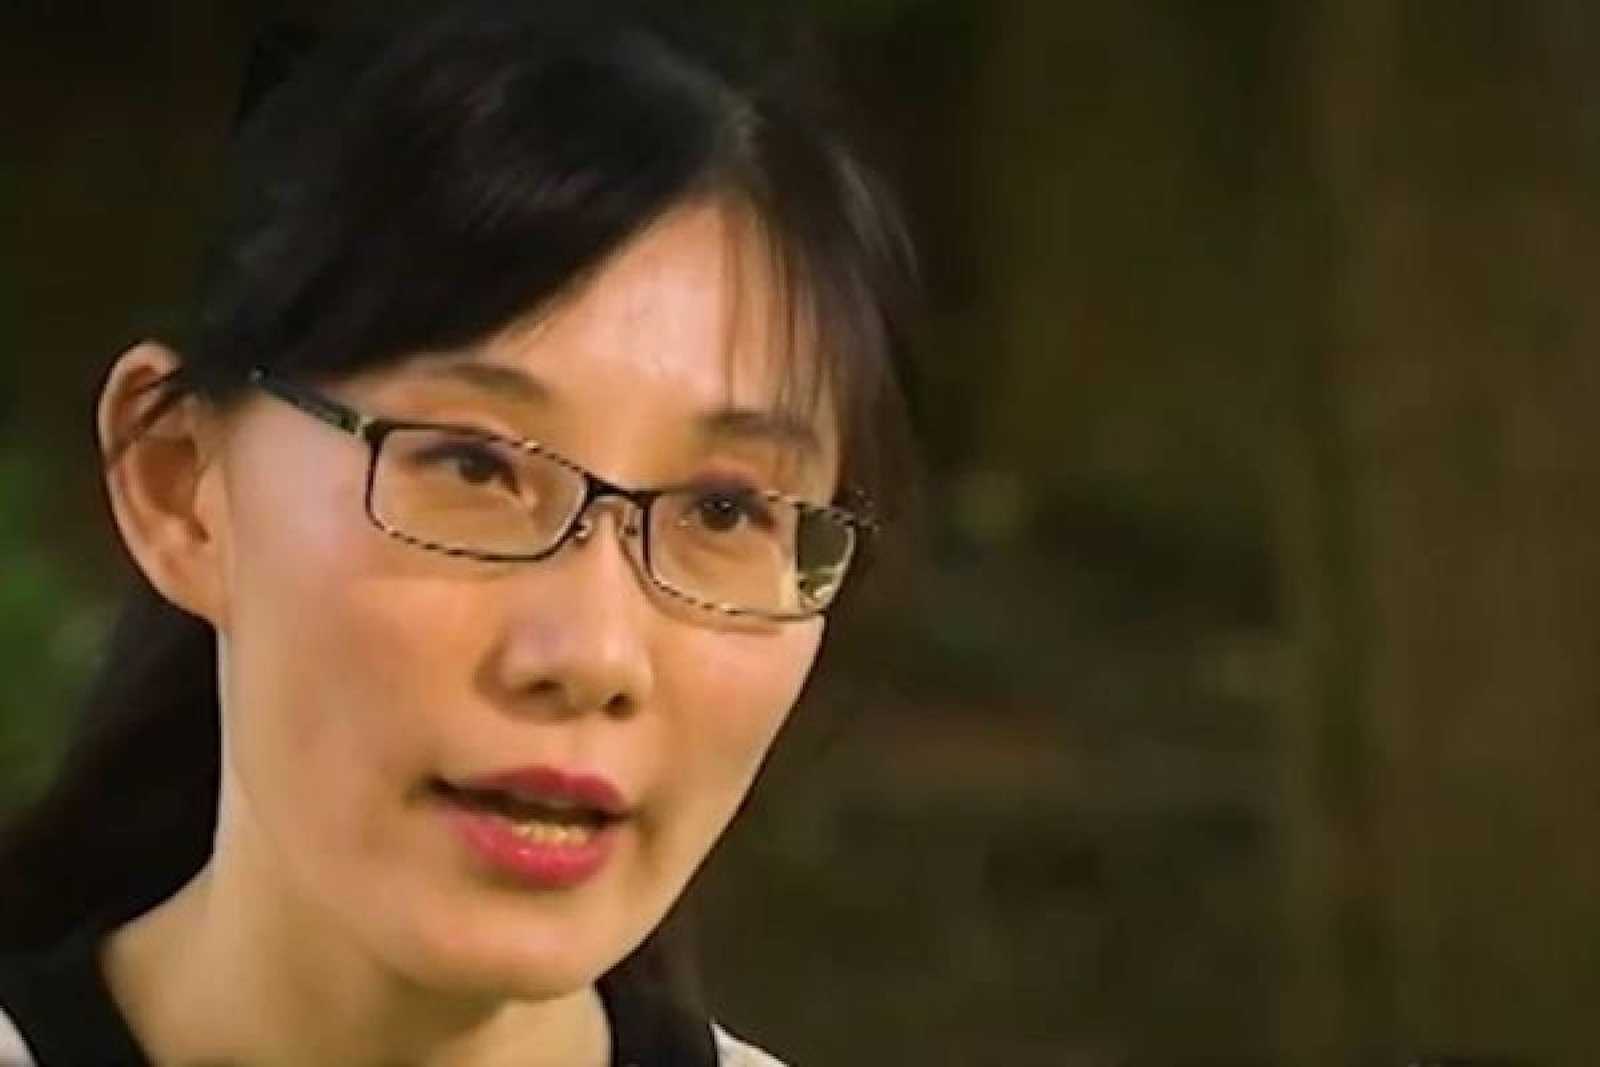 Chinese Virologist: China 'Intentionally' Released Virus